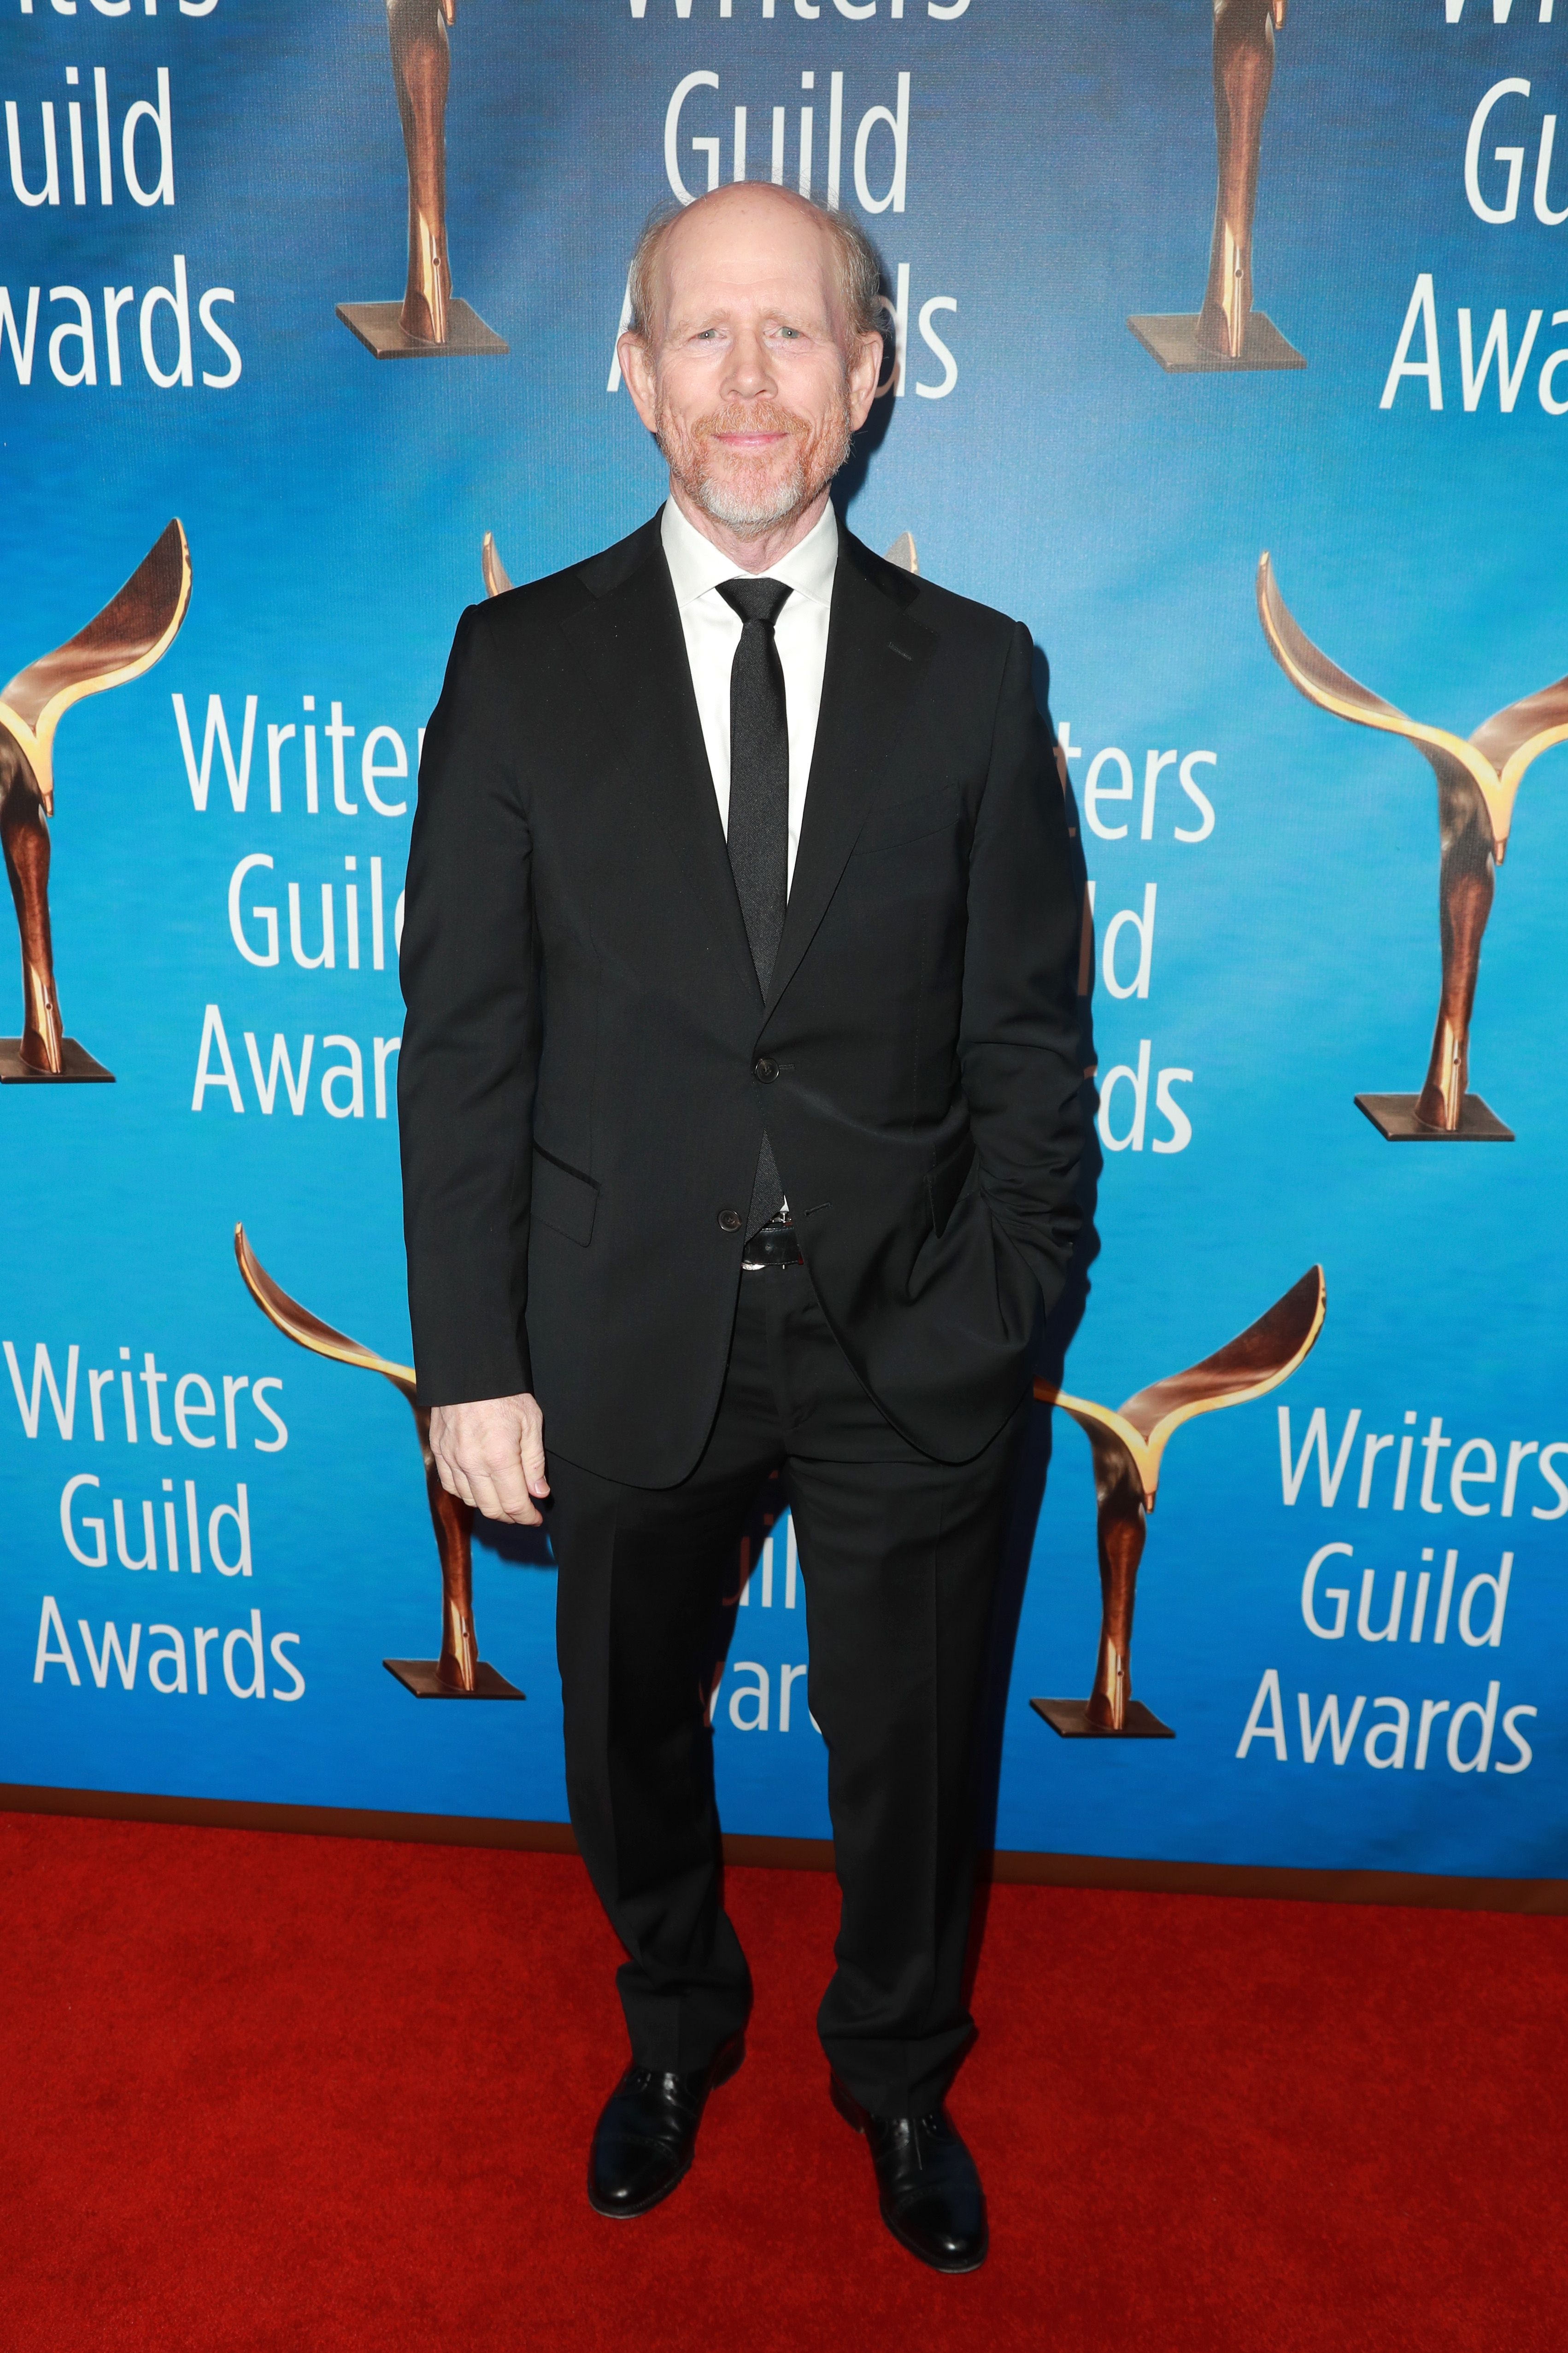 Ron Howard attends the 2019 Writers Guild Awards L.A. Ceremony at The Beverly Hilton Hotel on February 17, 2019 in Beverly Hills, California. | Photo: Getty Images